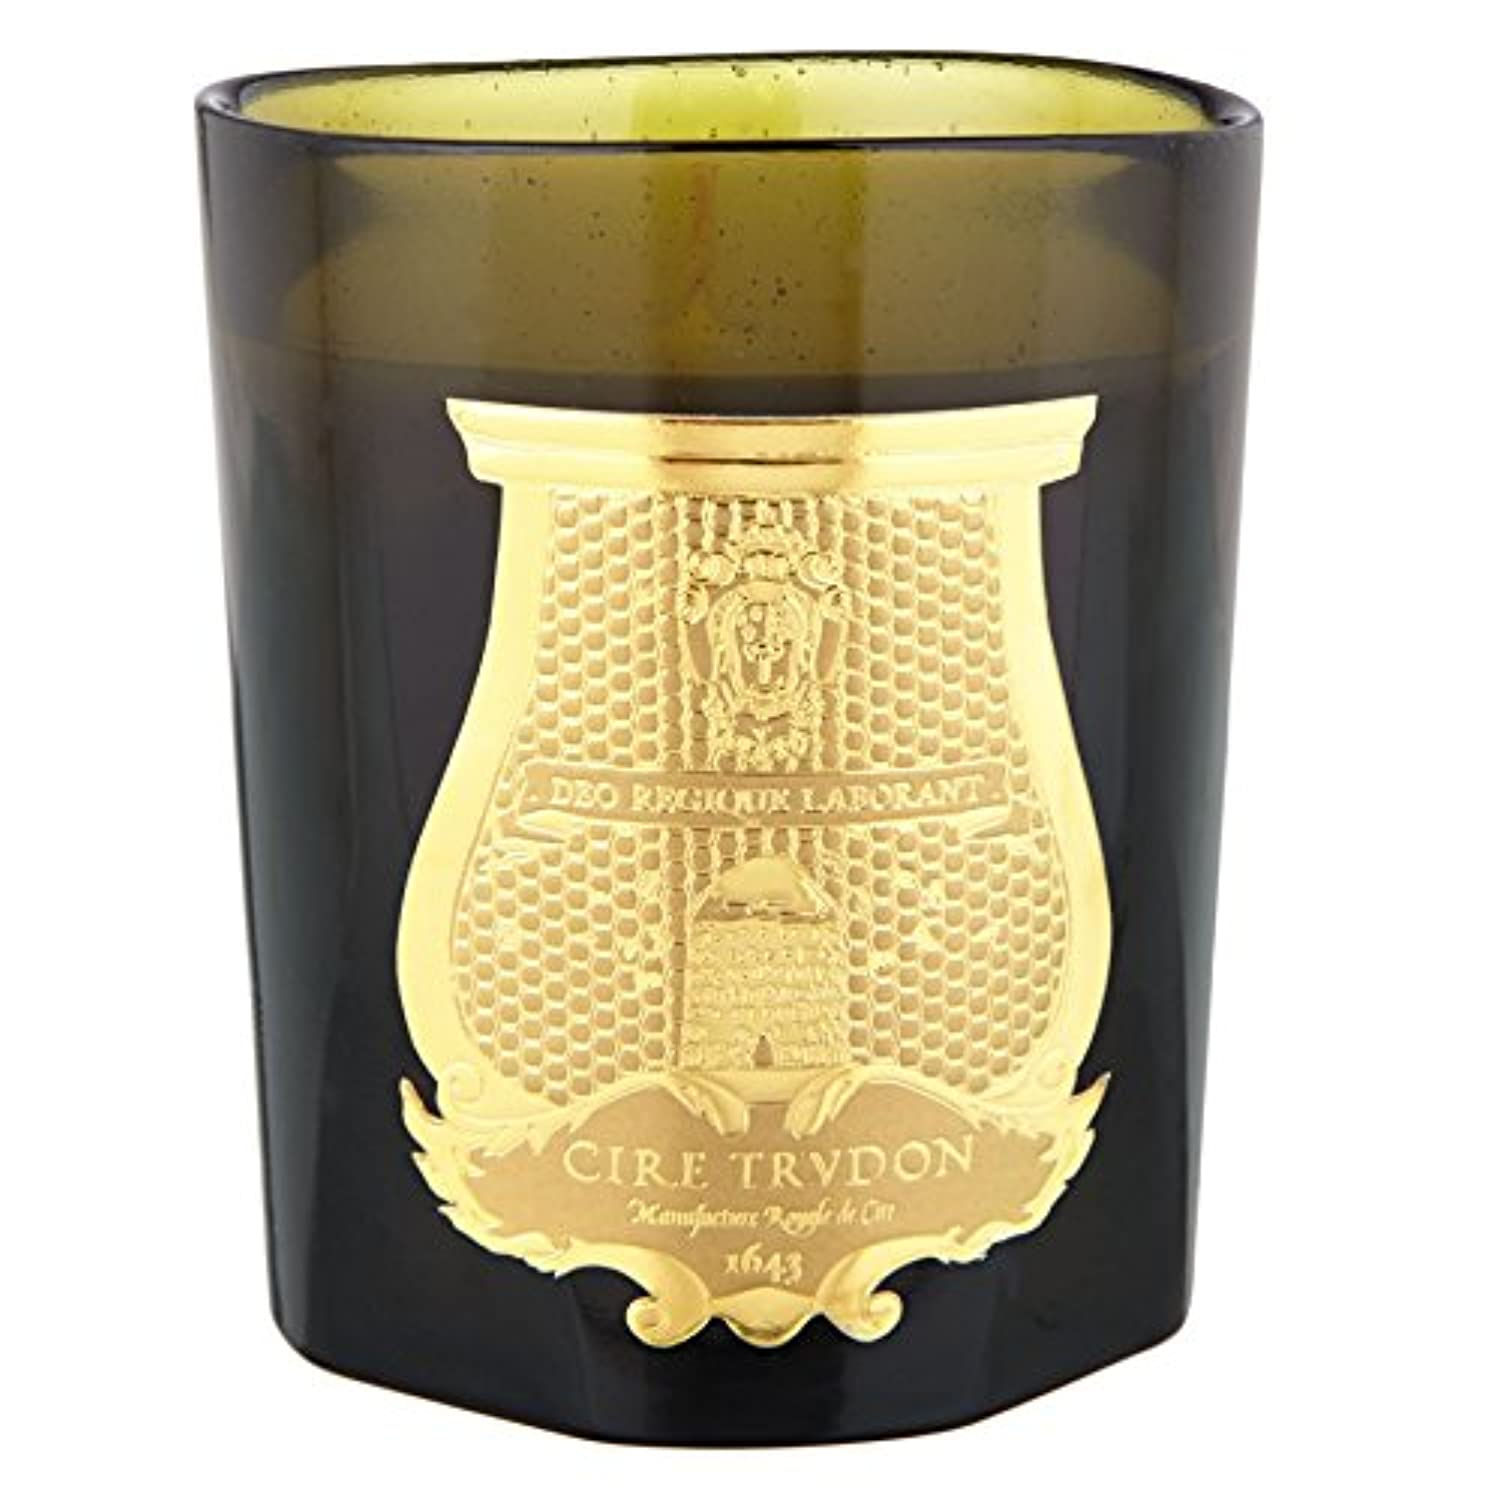 Cire Trudonカルメル会Scented Candle – パックof 2